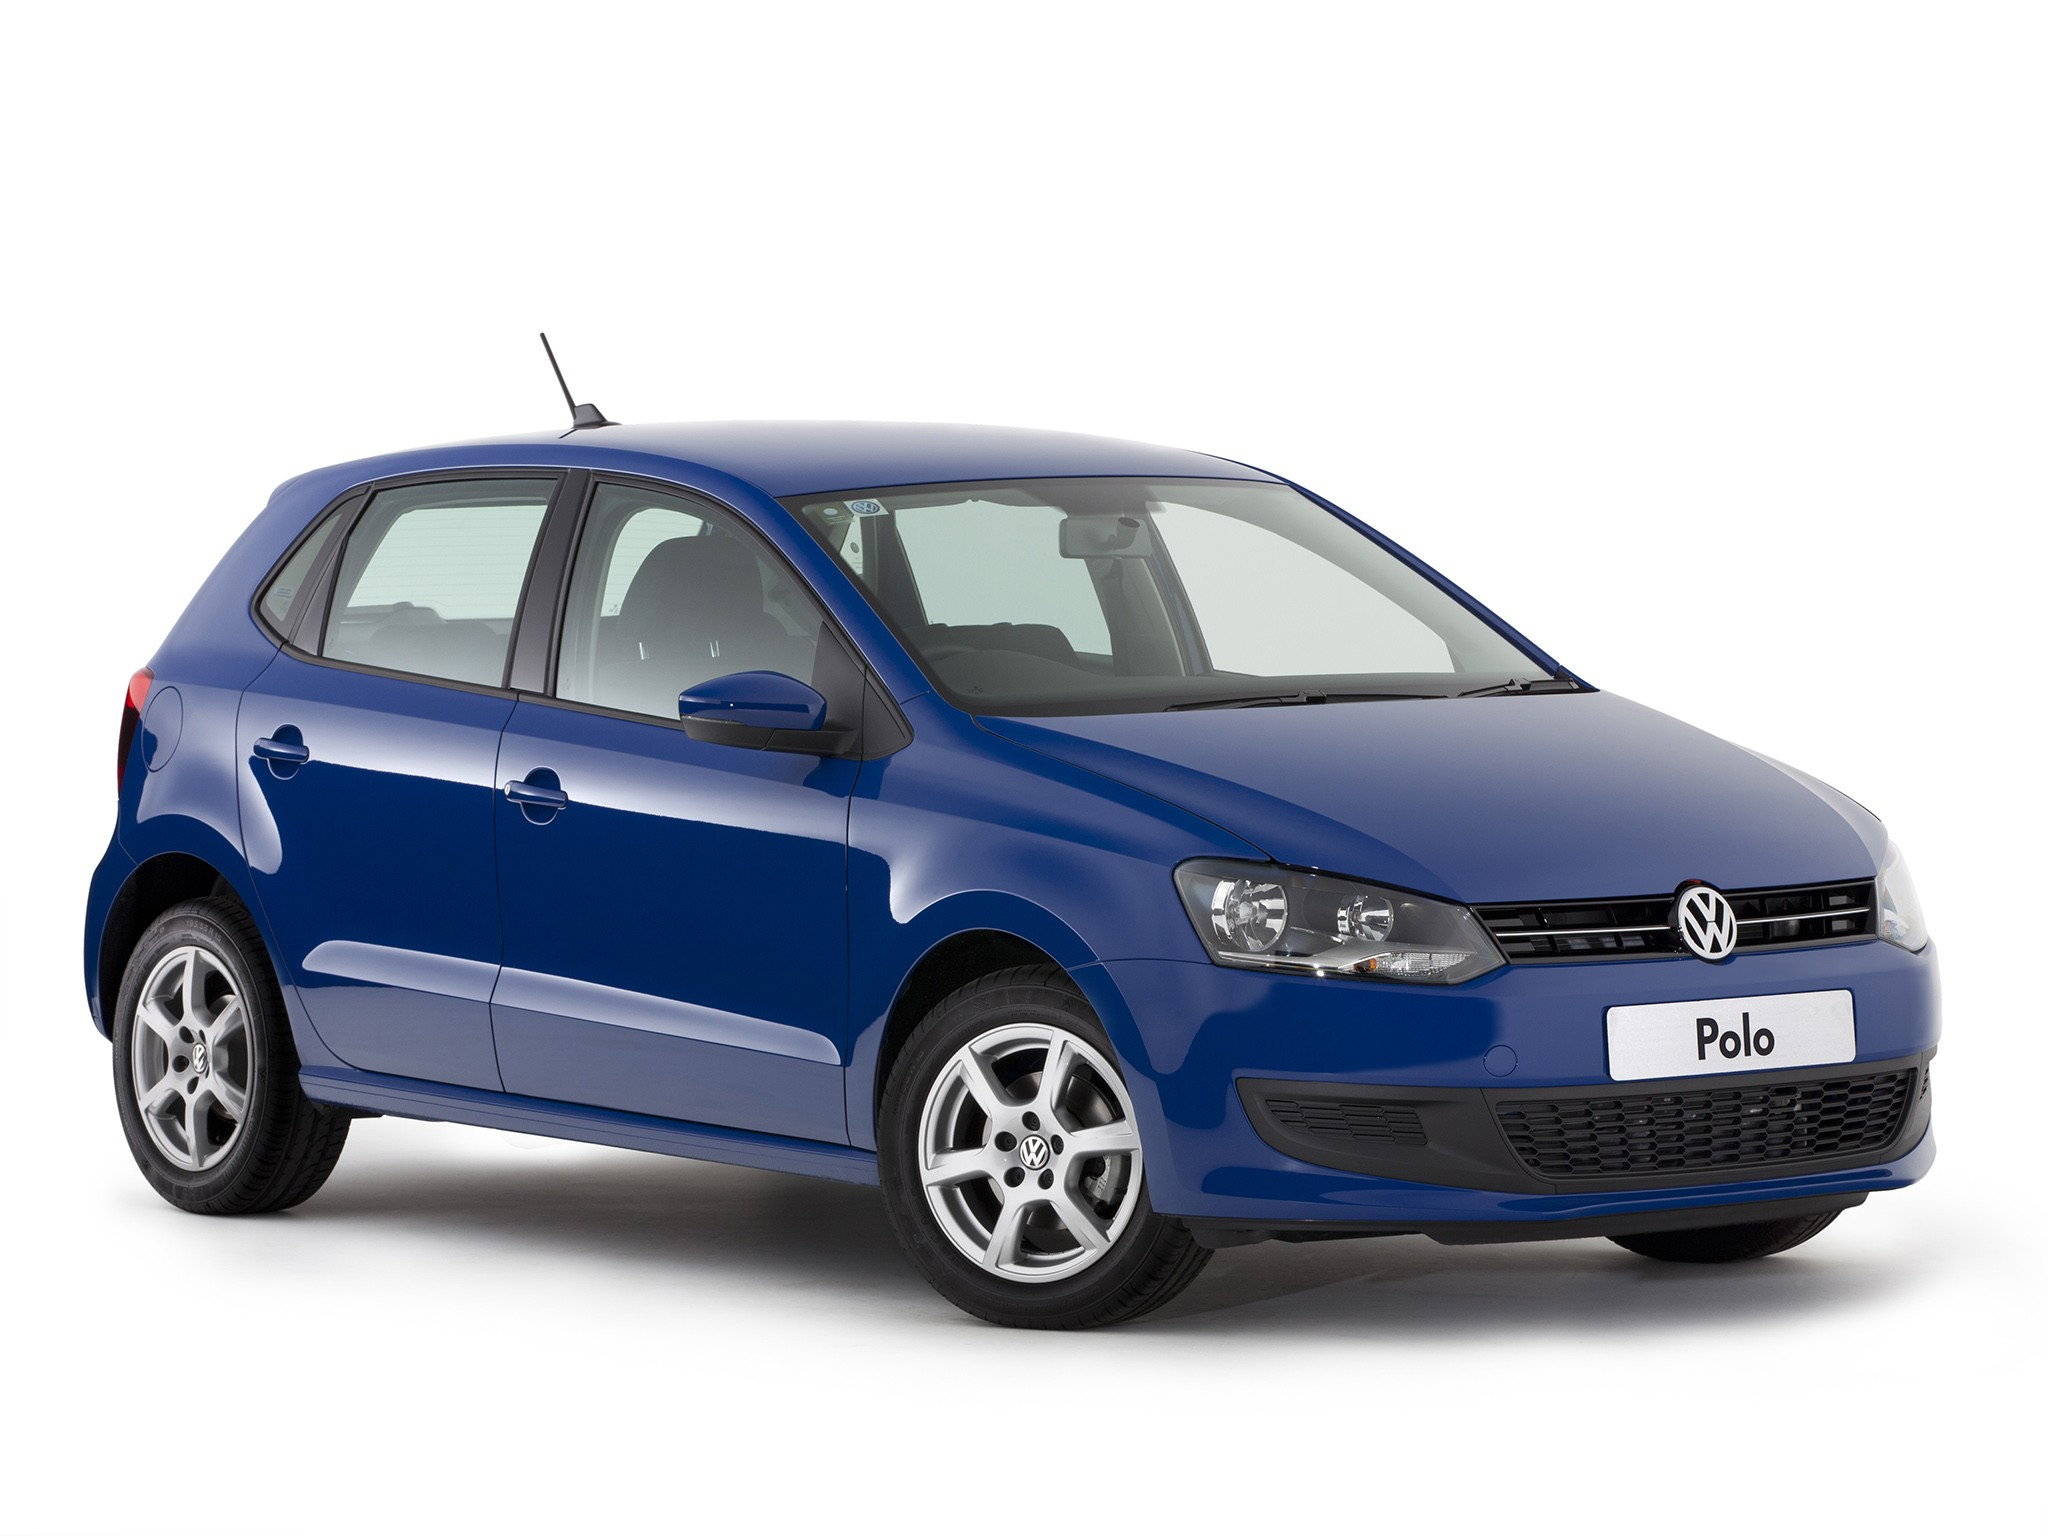 volkswagen polo 5 doors specs 2009 2010 2011 2012 2013 2014 autoevolution. Black Bedroom Furniture Sets. Home Design Ideas